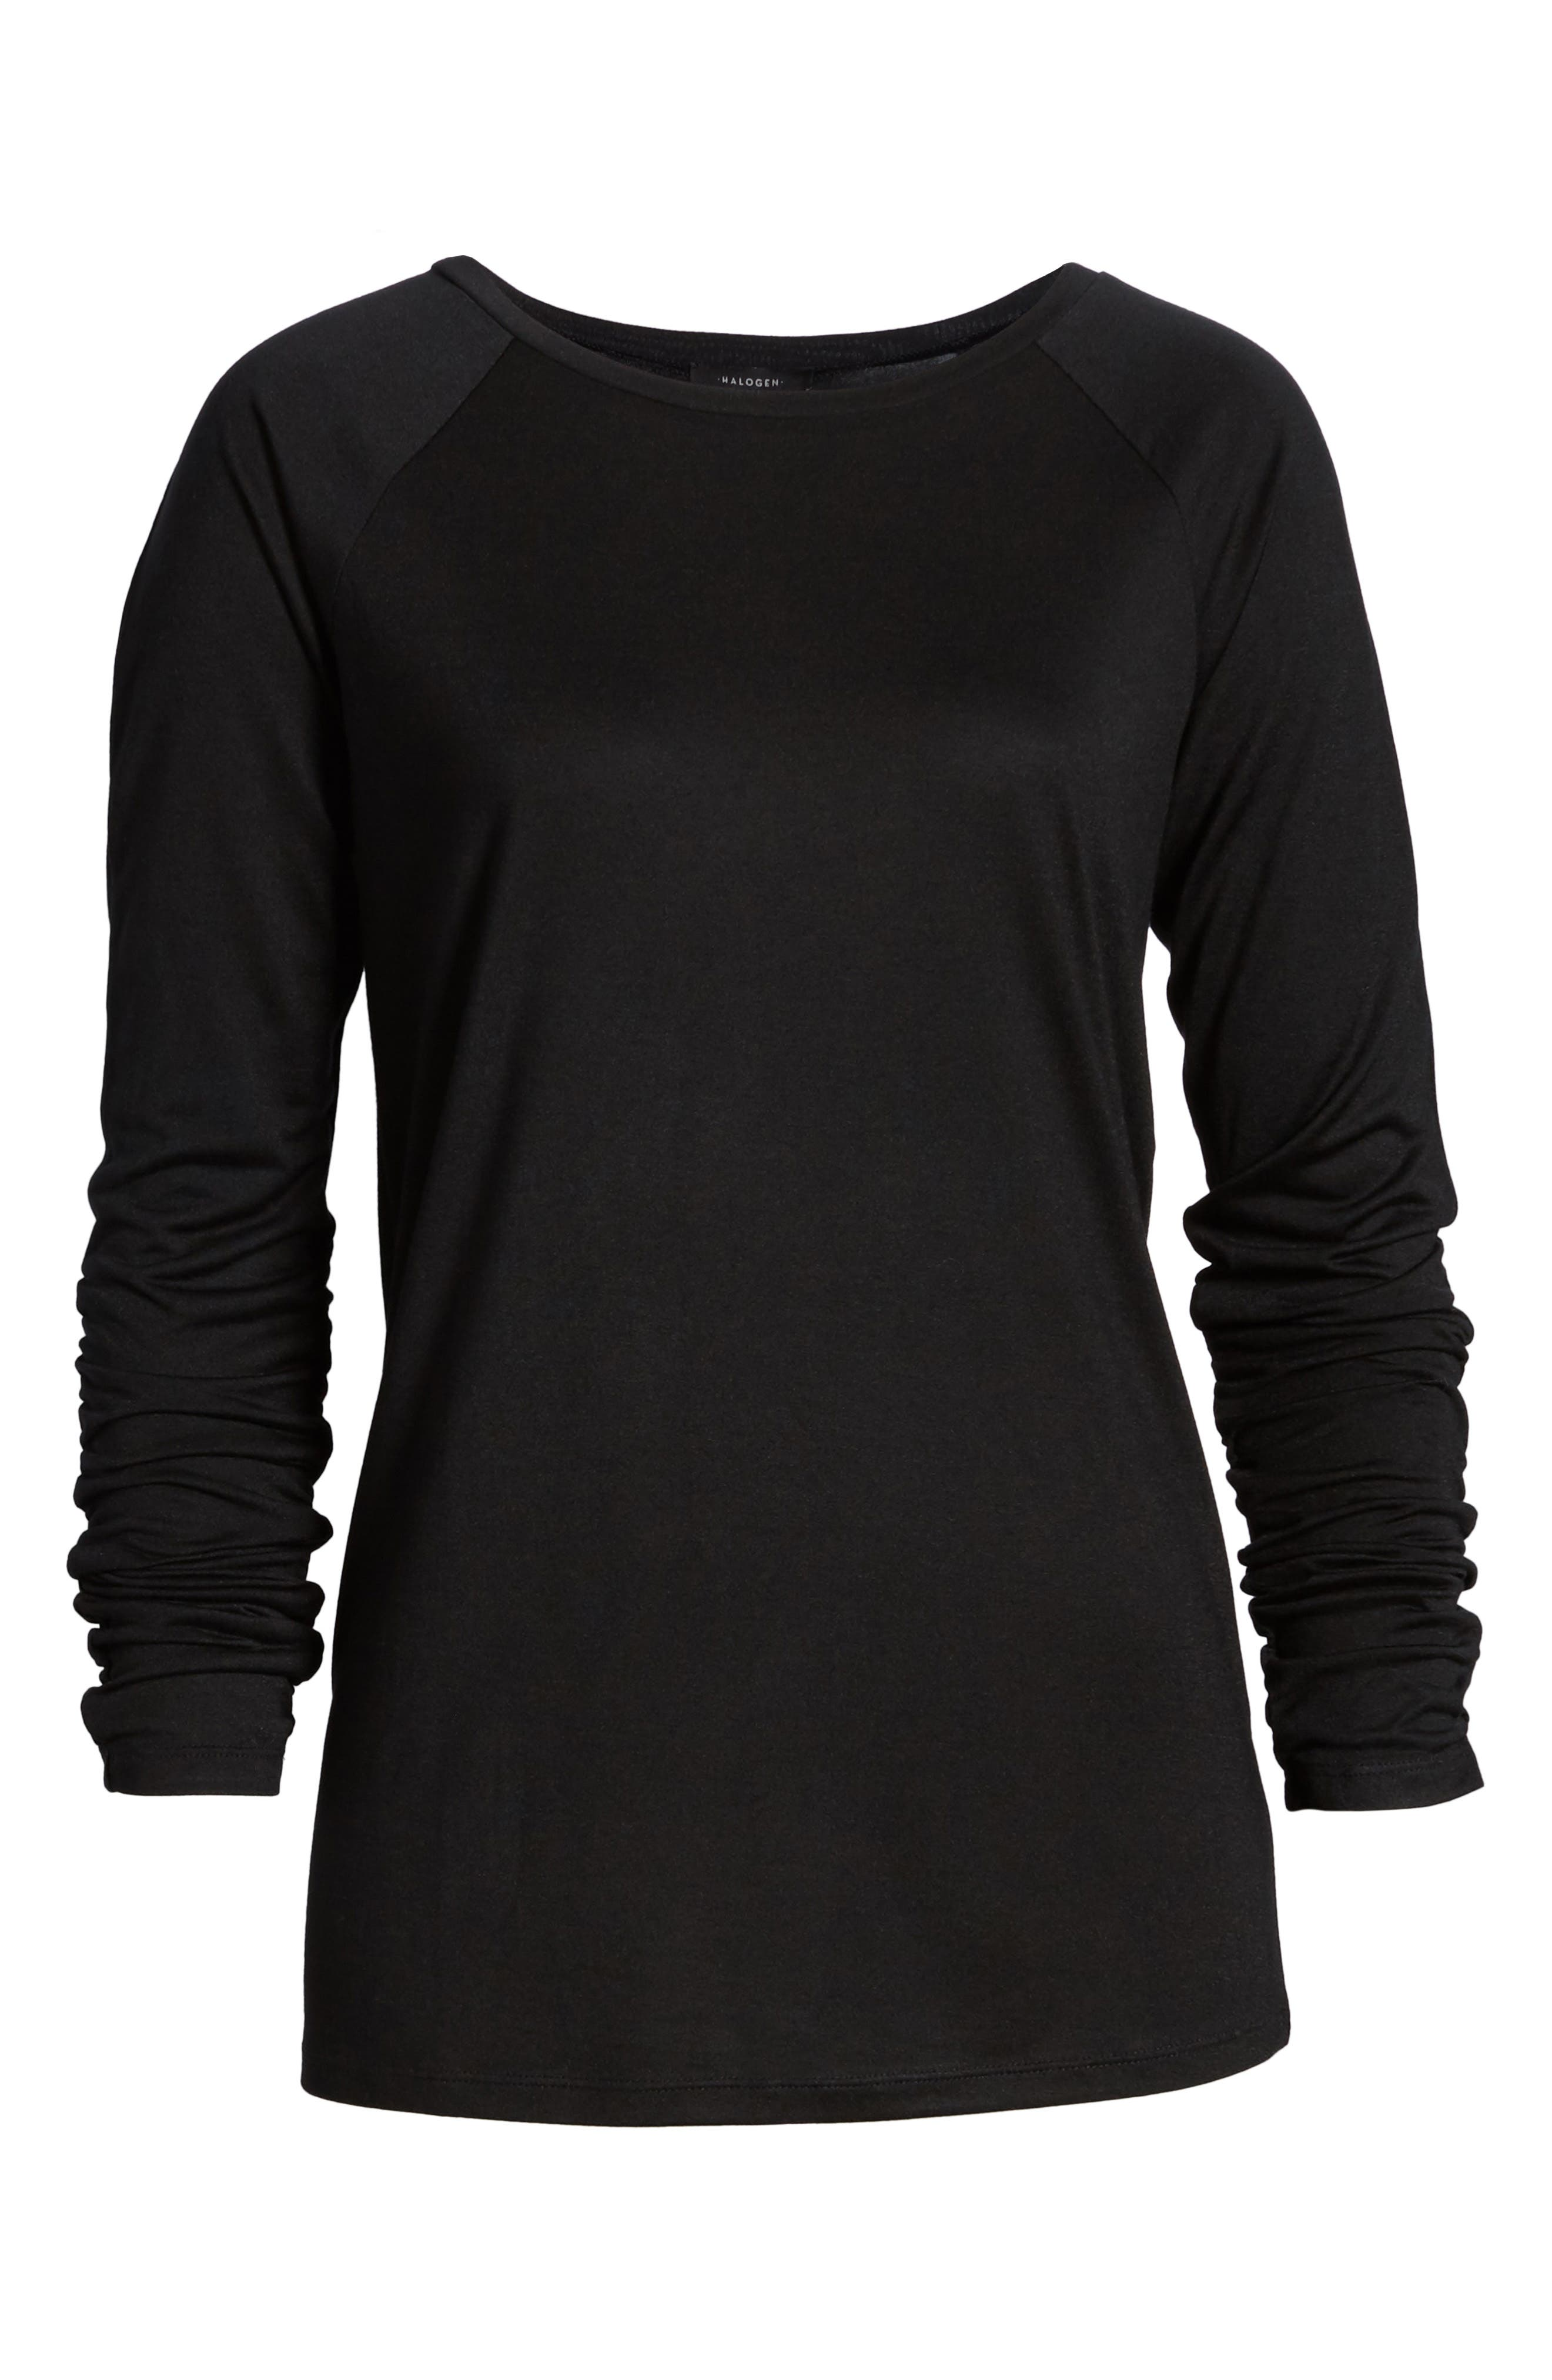 Ruched Sleeve Tee,                             Alternate thumbnail 6, color,                             001